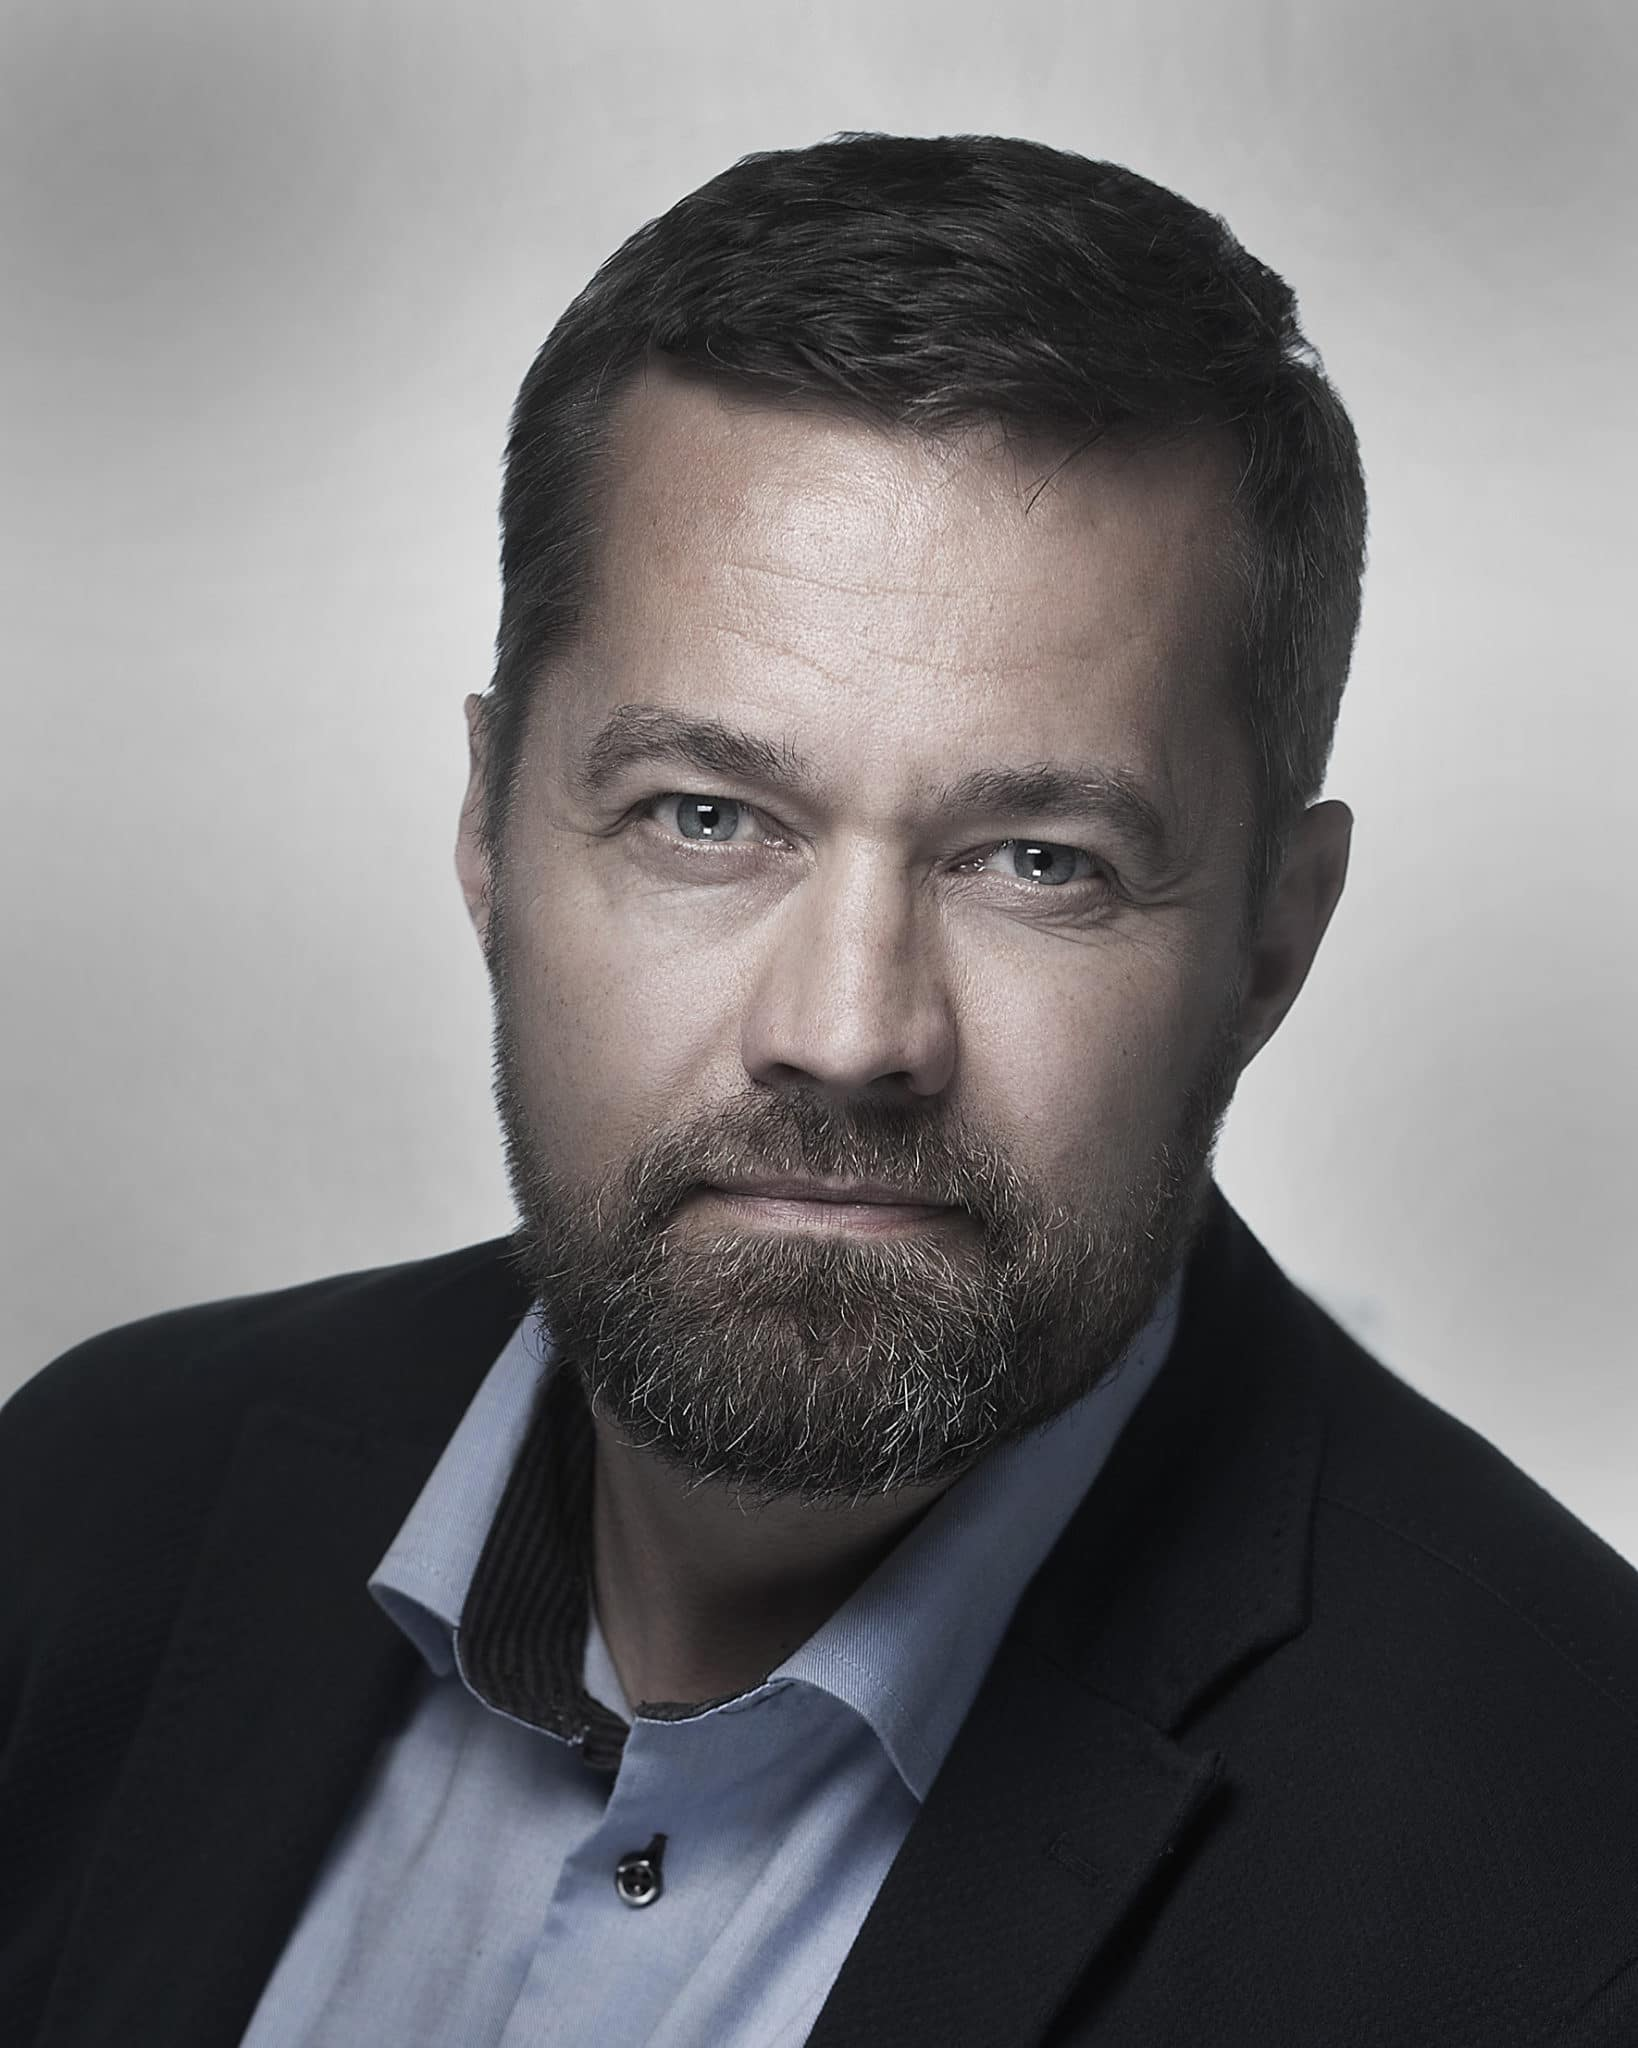 Arne Eivind Andersen, CEO & Founder, Sharebox AS